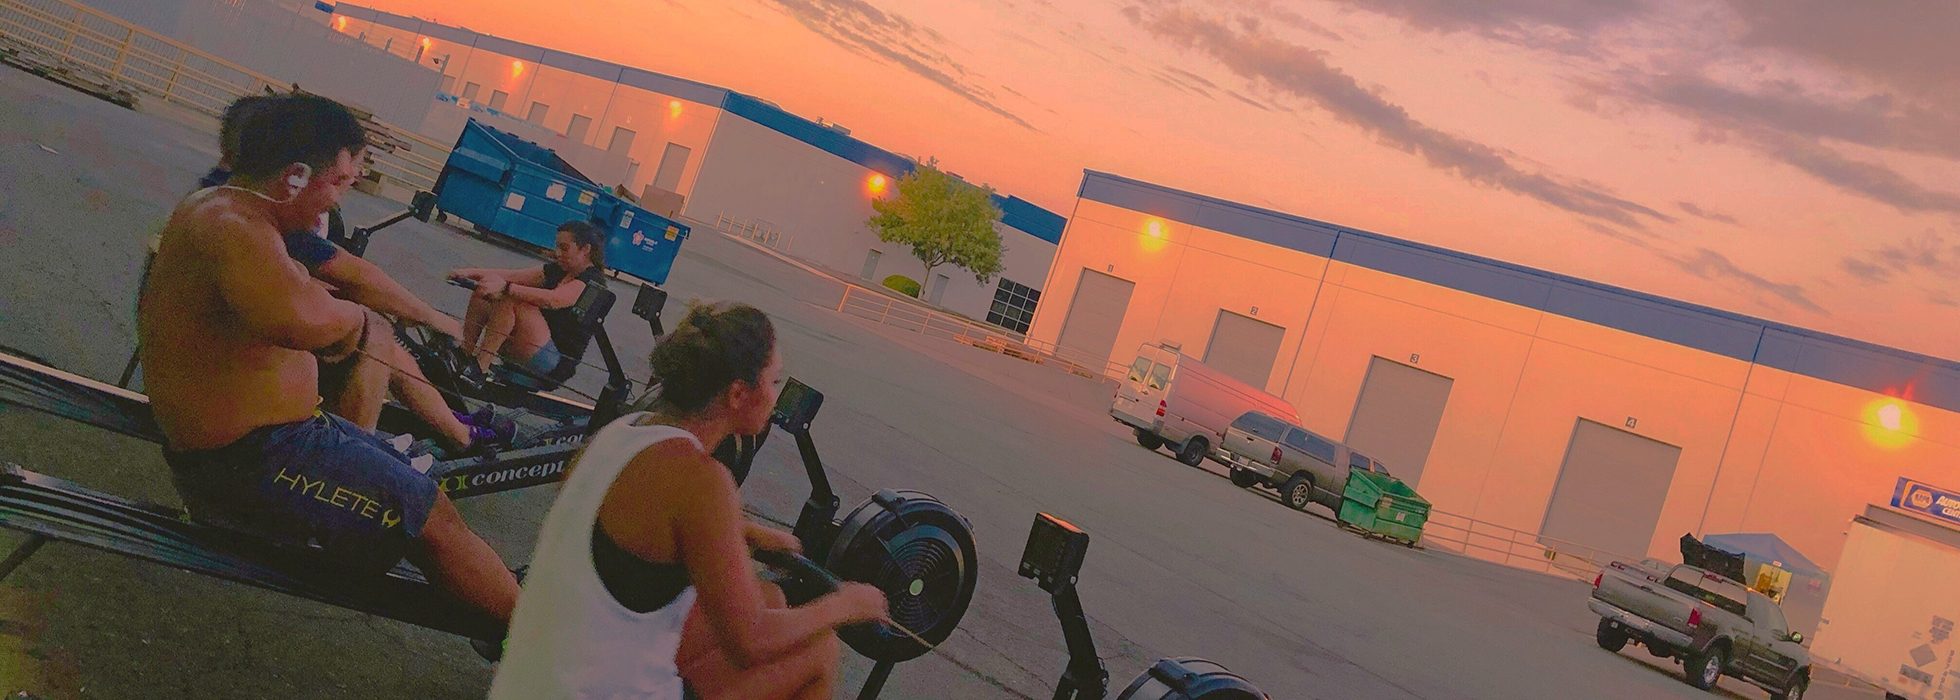 CrossFit Natomas Rowing at Sunset